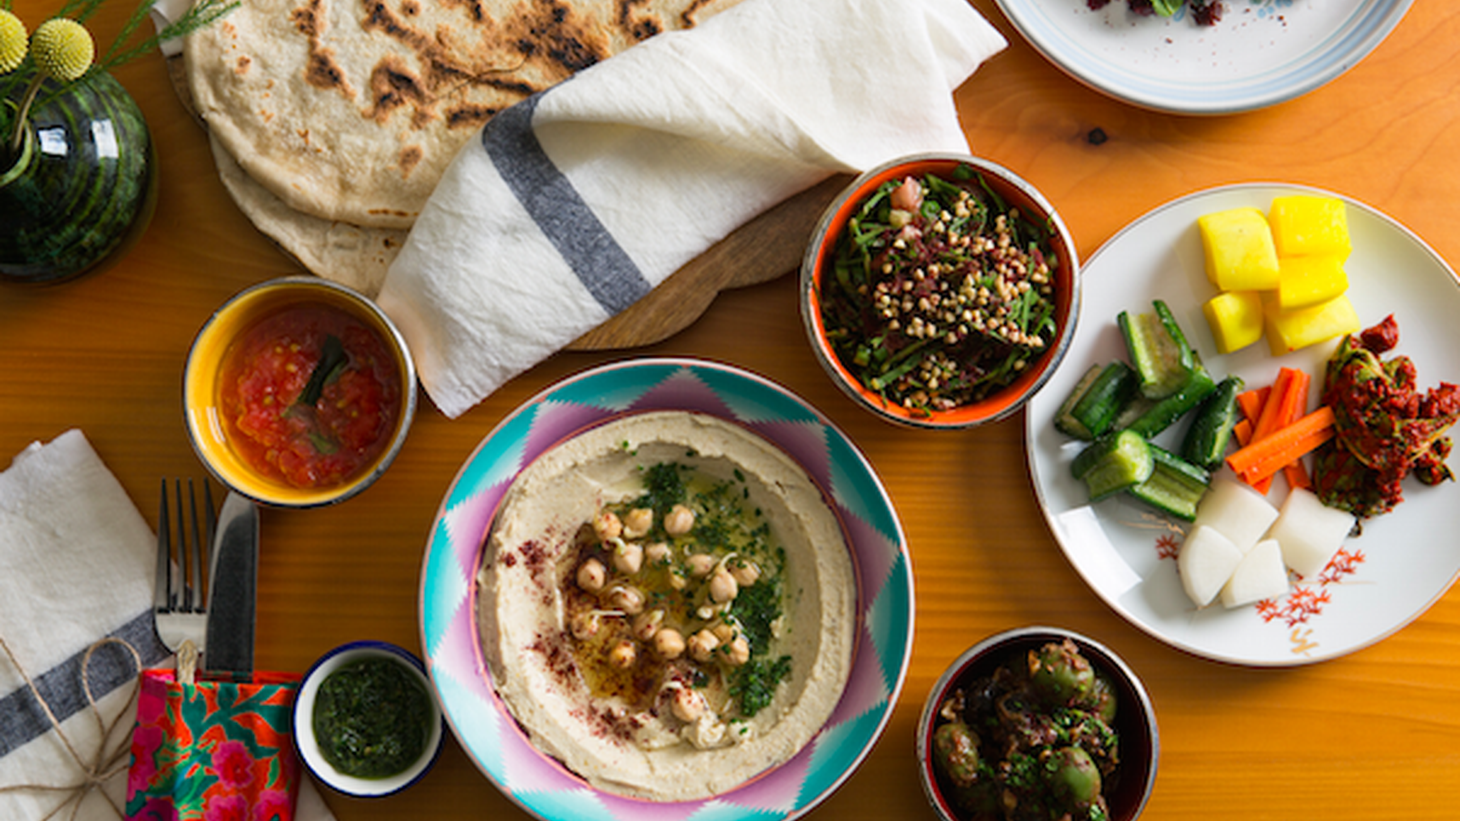 According to Jonathan Gold, the amba aioli at Israeli-inspired The Exchange is the new Thousand Island dressing.